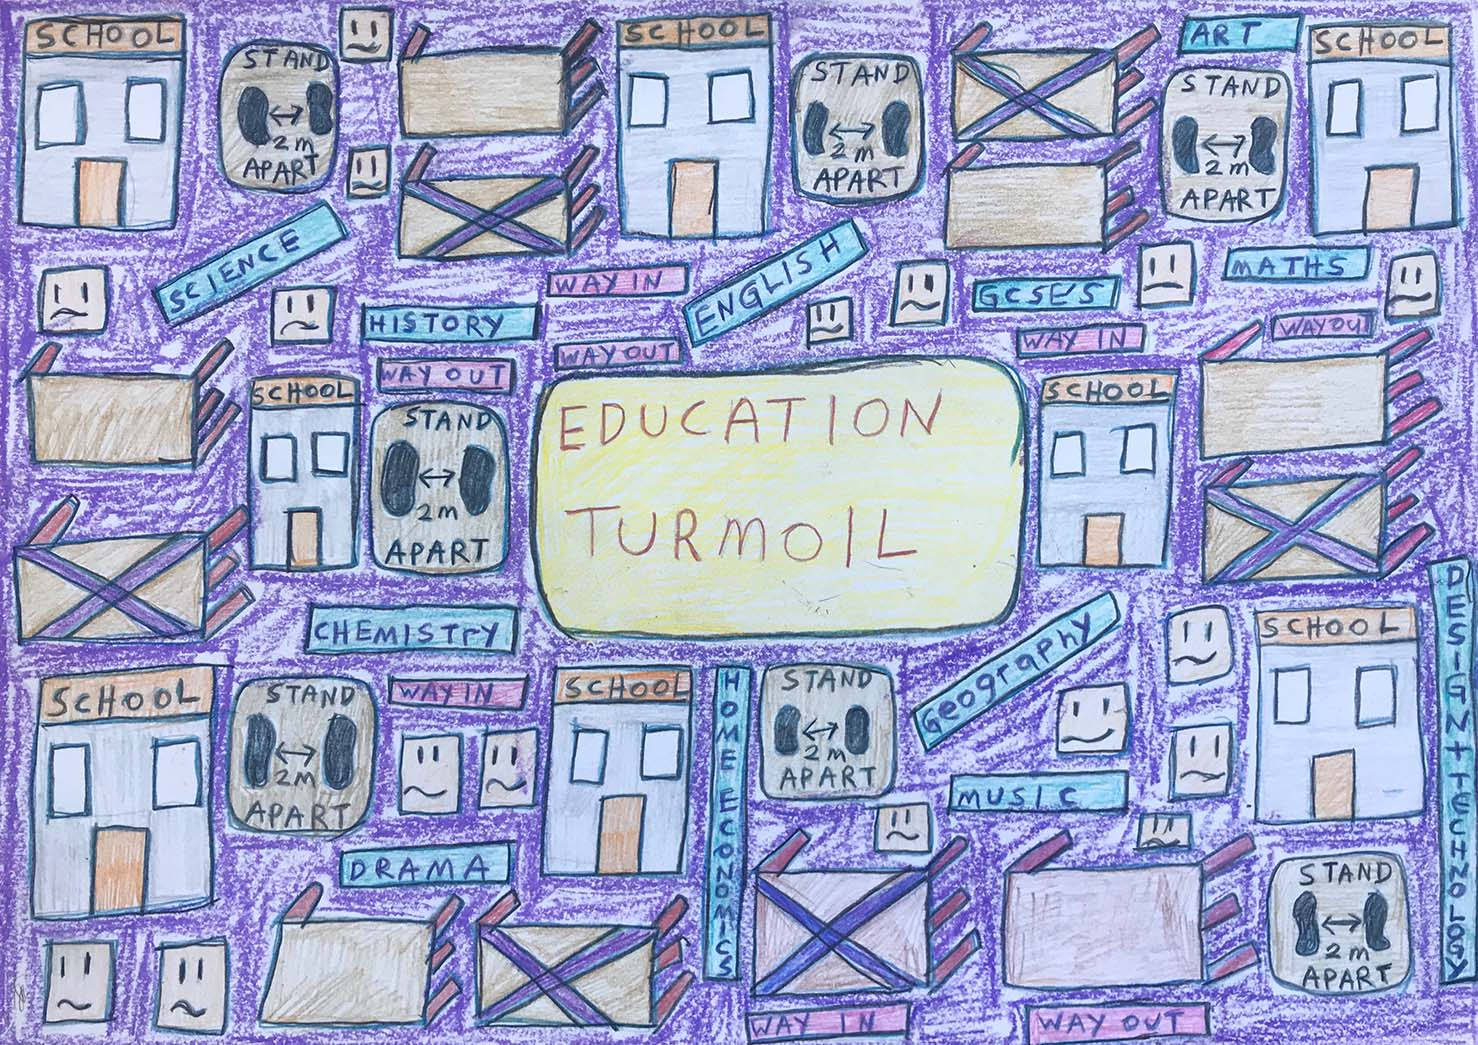 Education Turmoil